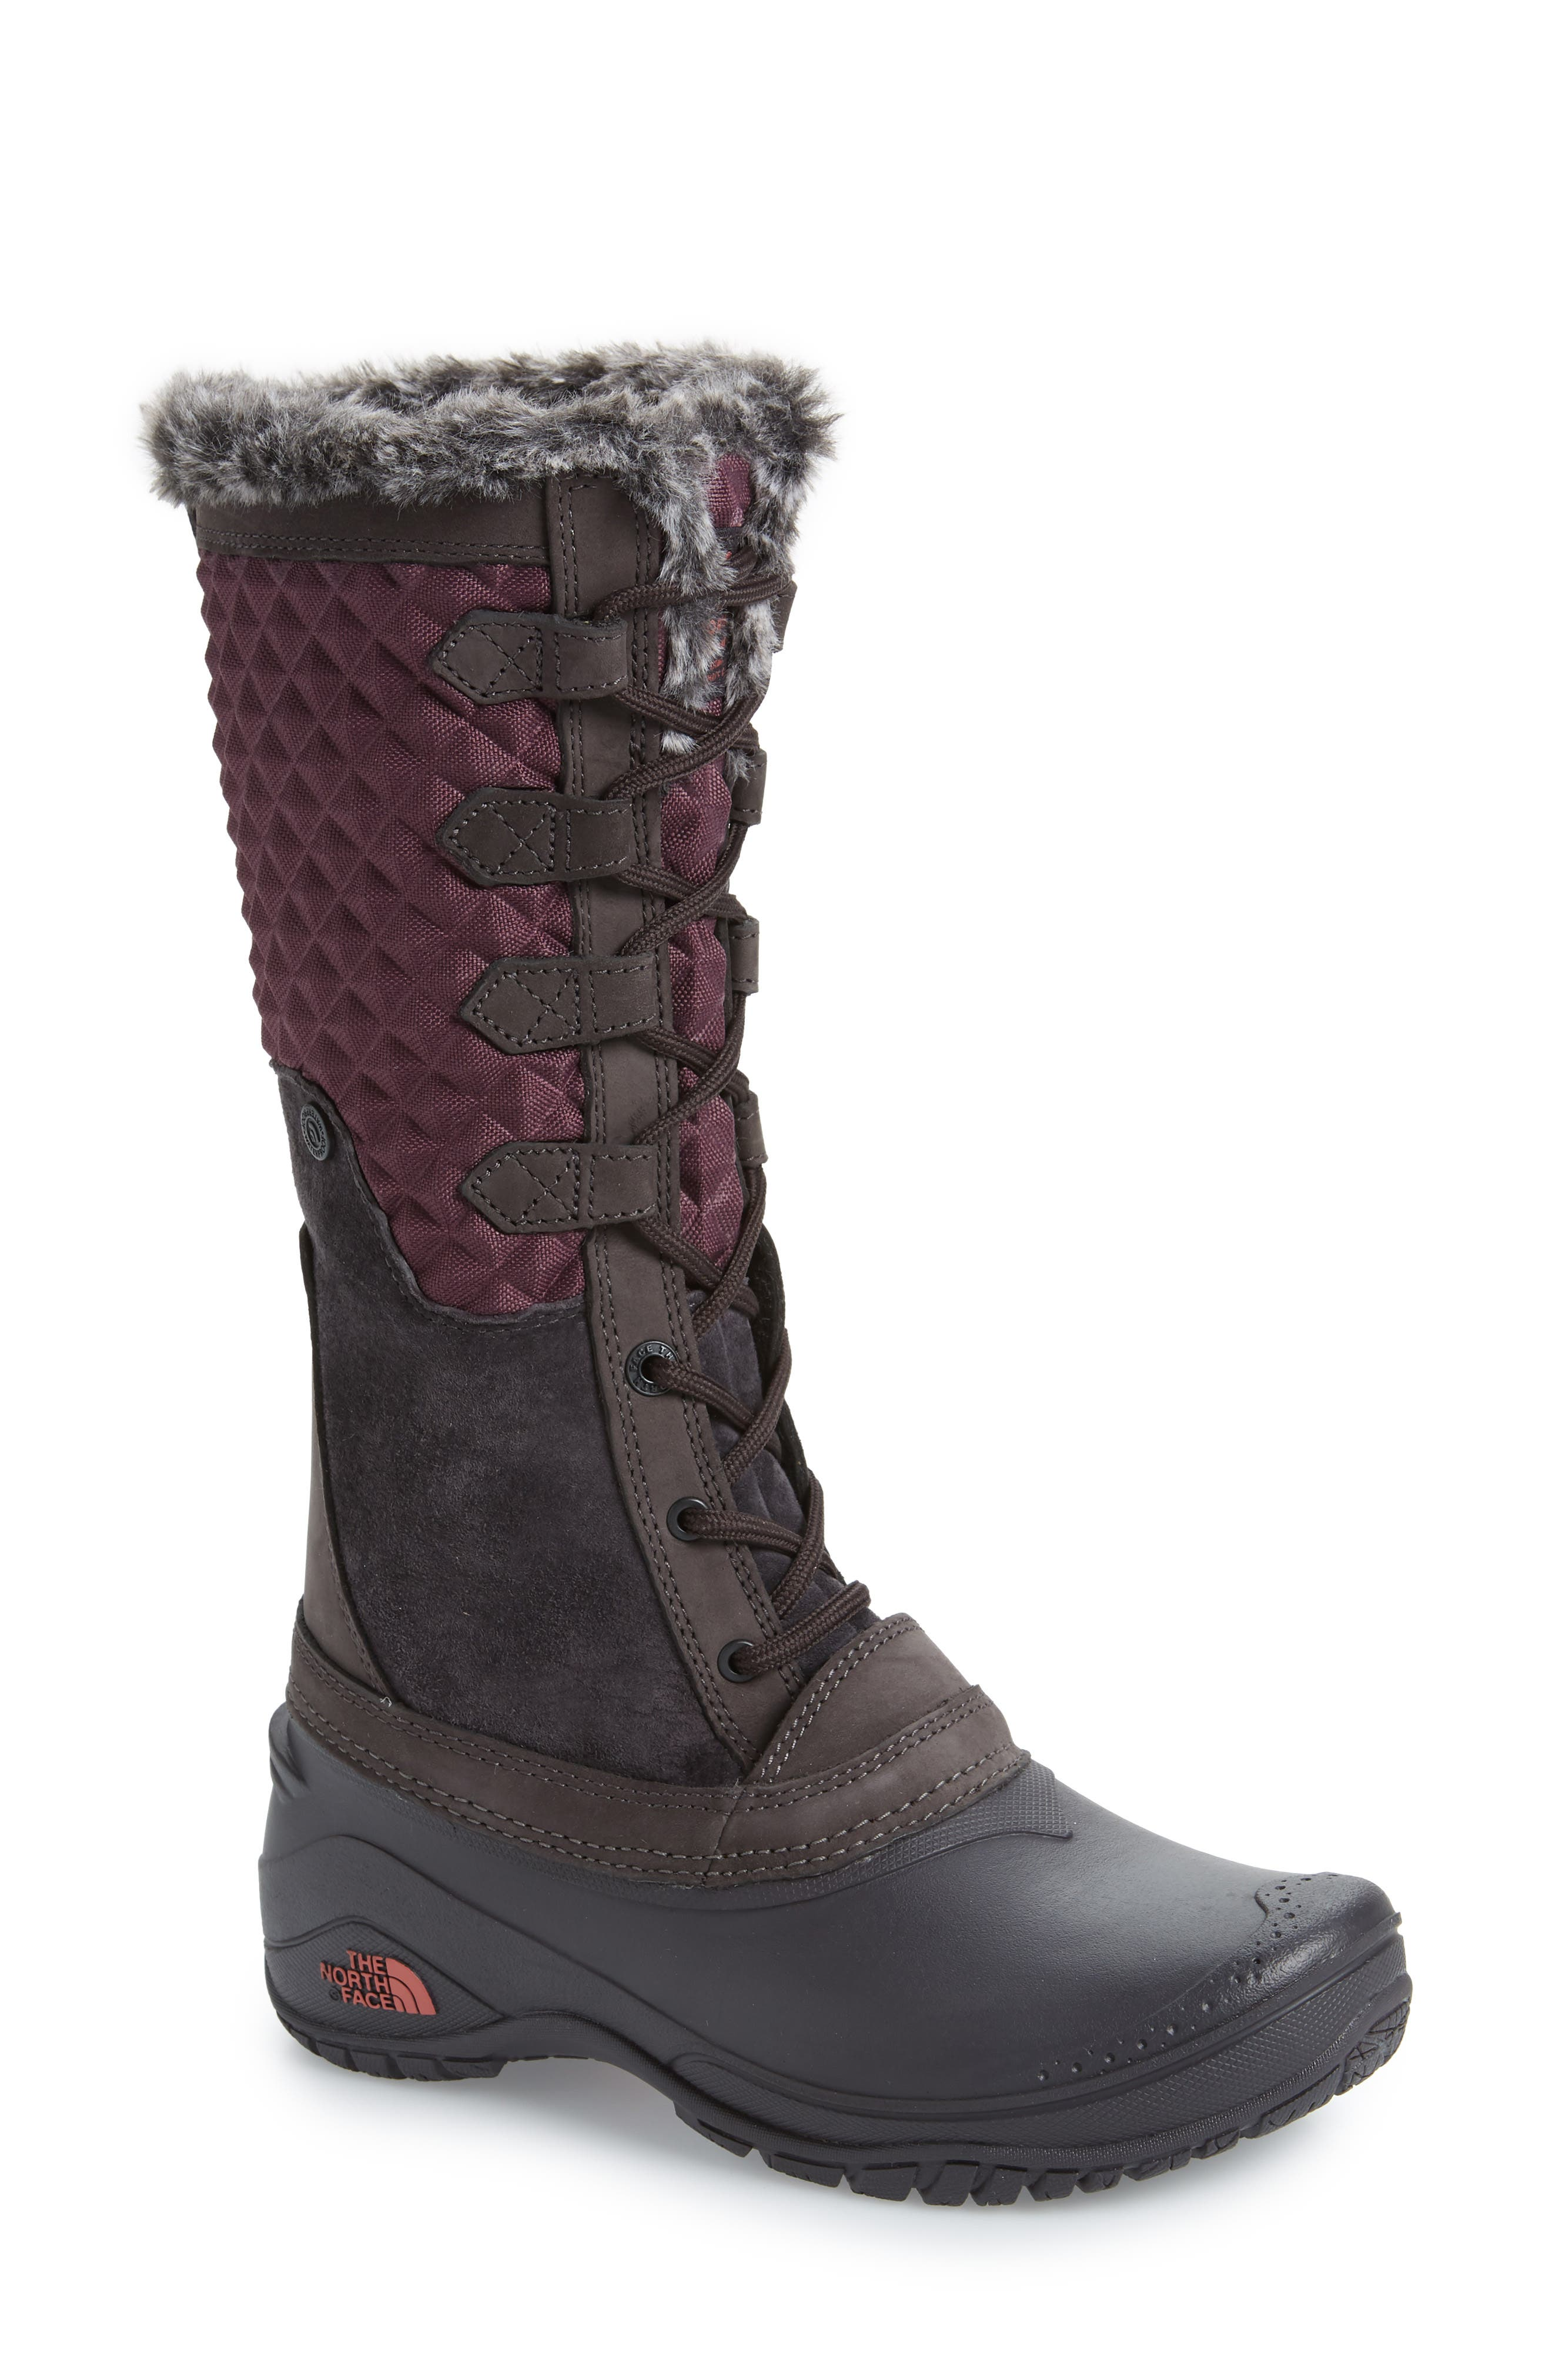 The North Face Shellista Iii Tall Waterproof Insulated Winter Boot- Burgundy